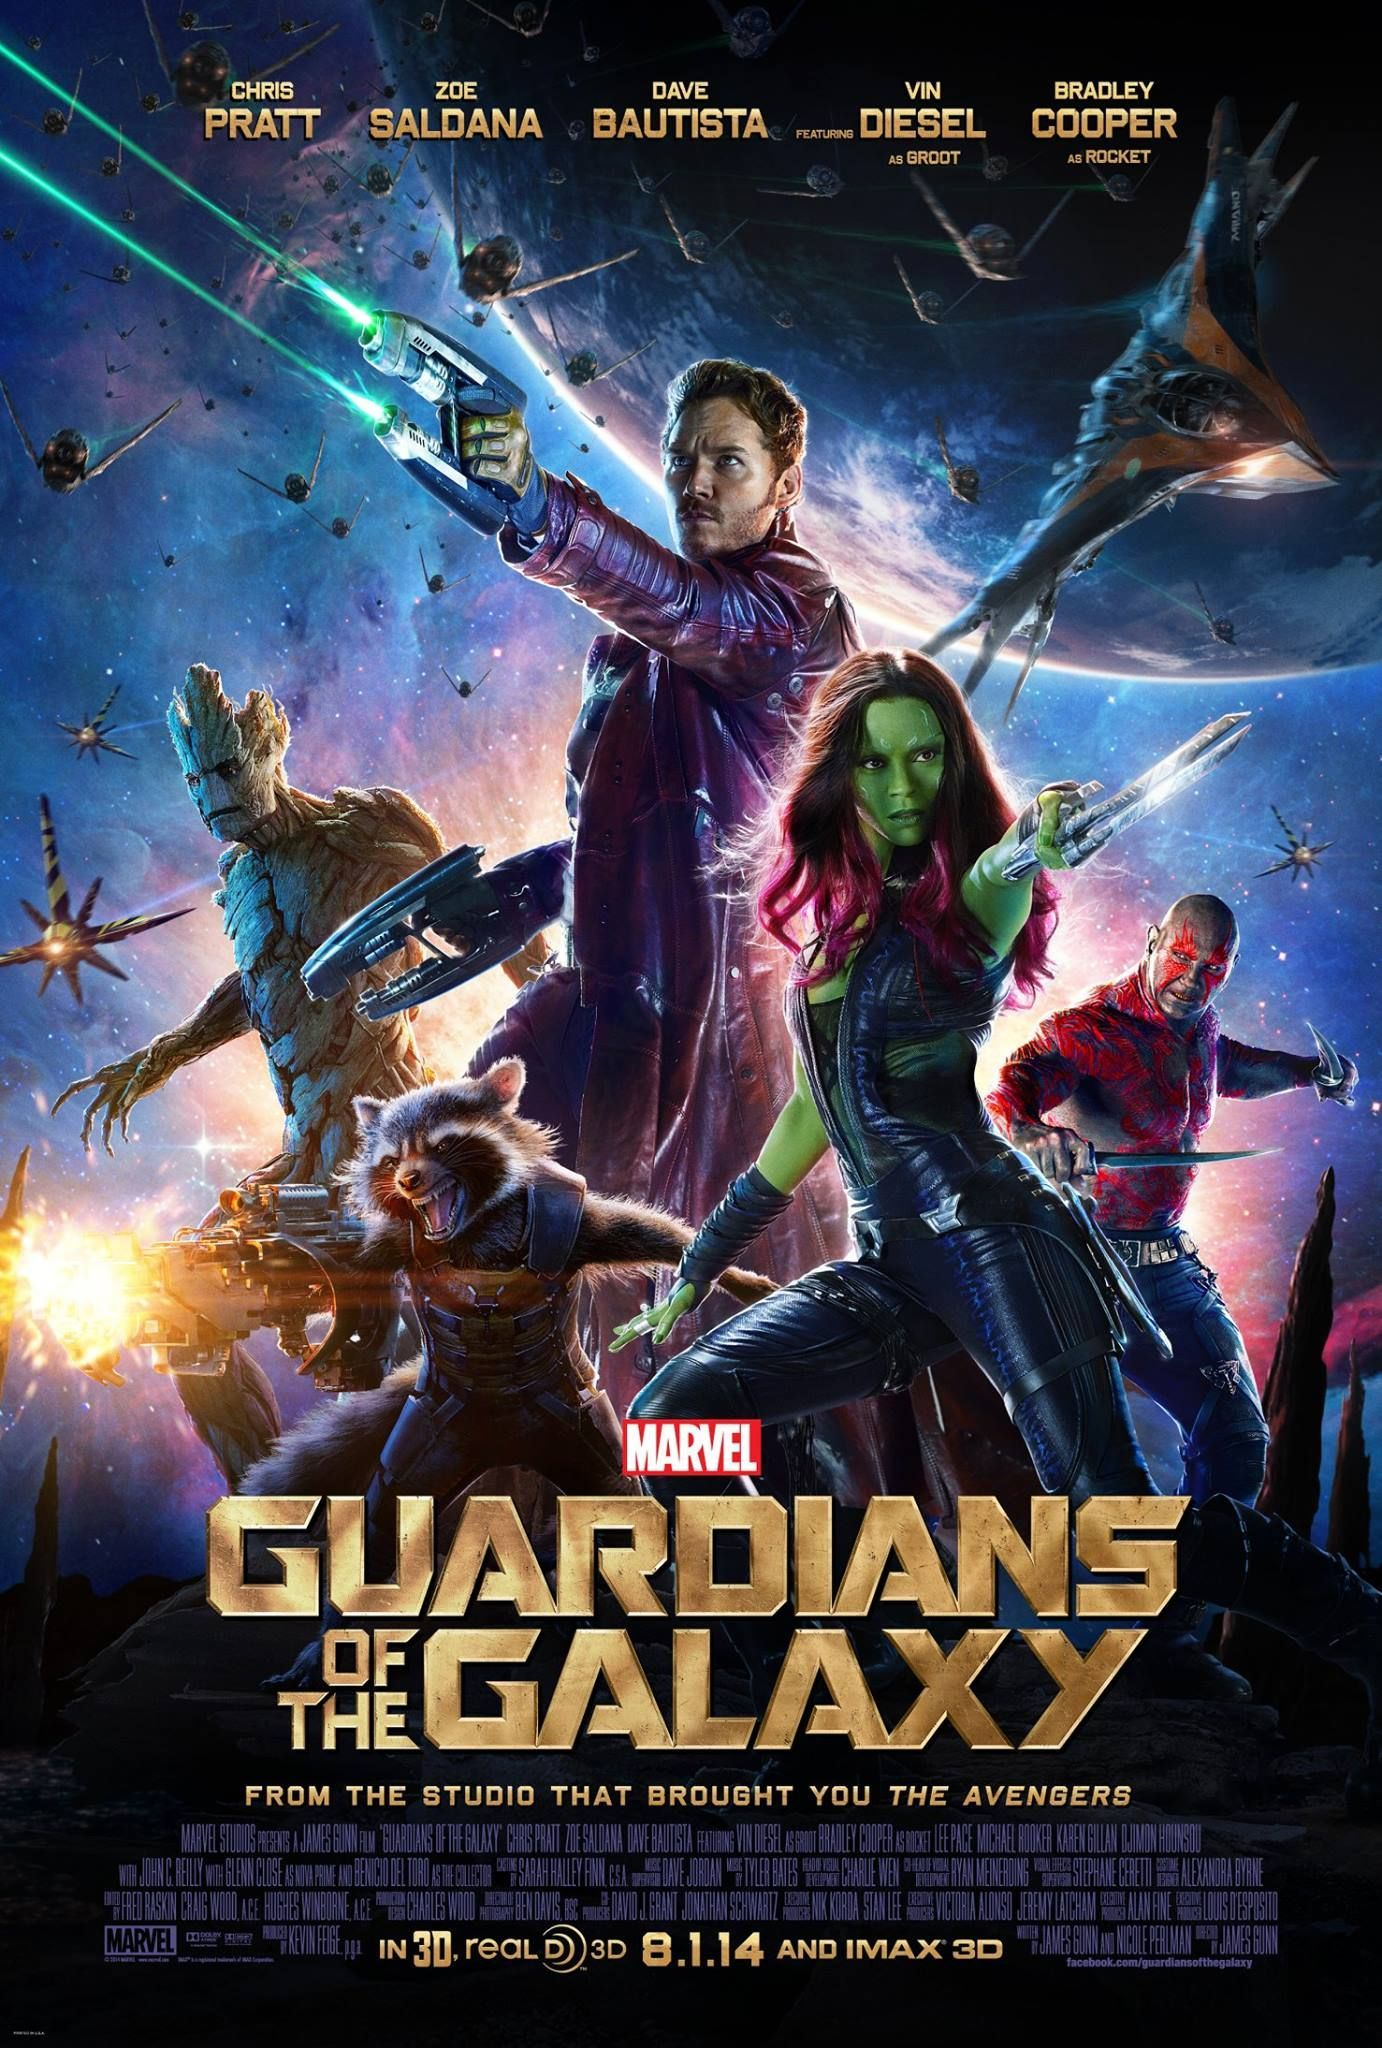 New Poster for Guardians of the Galaxy